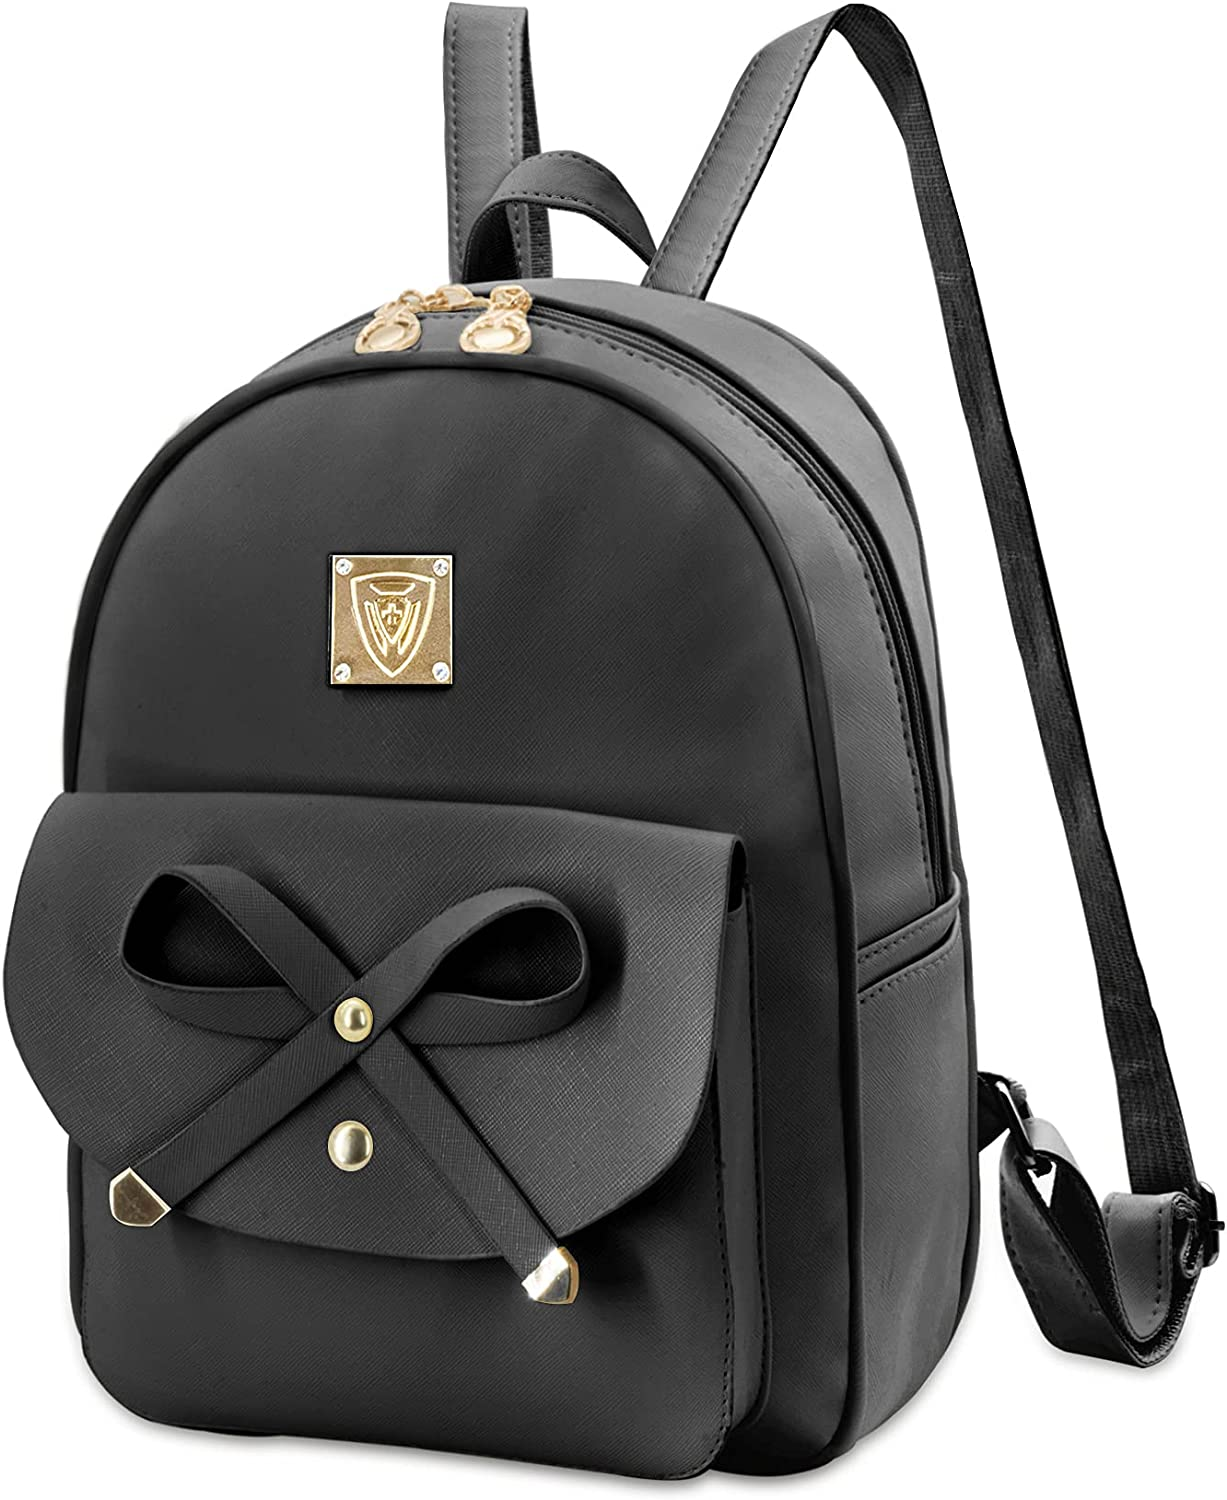 Girls Cute Leather Backpack Purse Mini Bag Best Gift Women Small Fashion Handbags Daypack with Bowknot AS6065 Classic (Black)